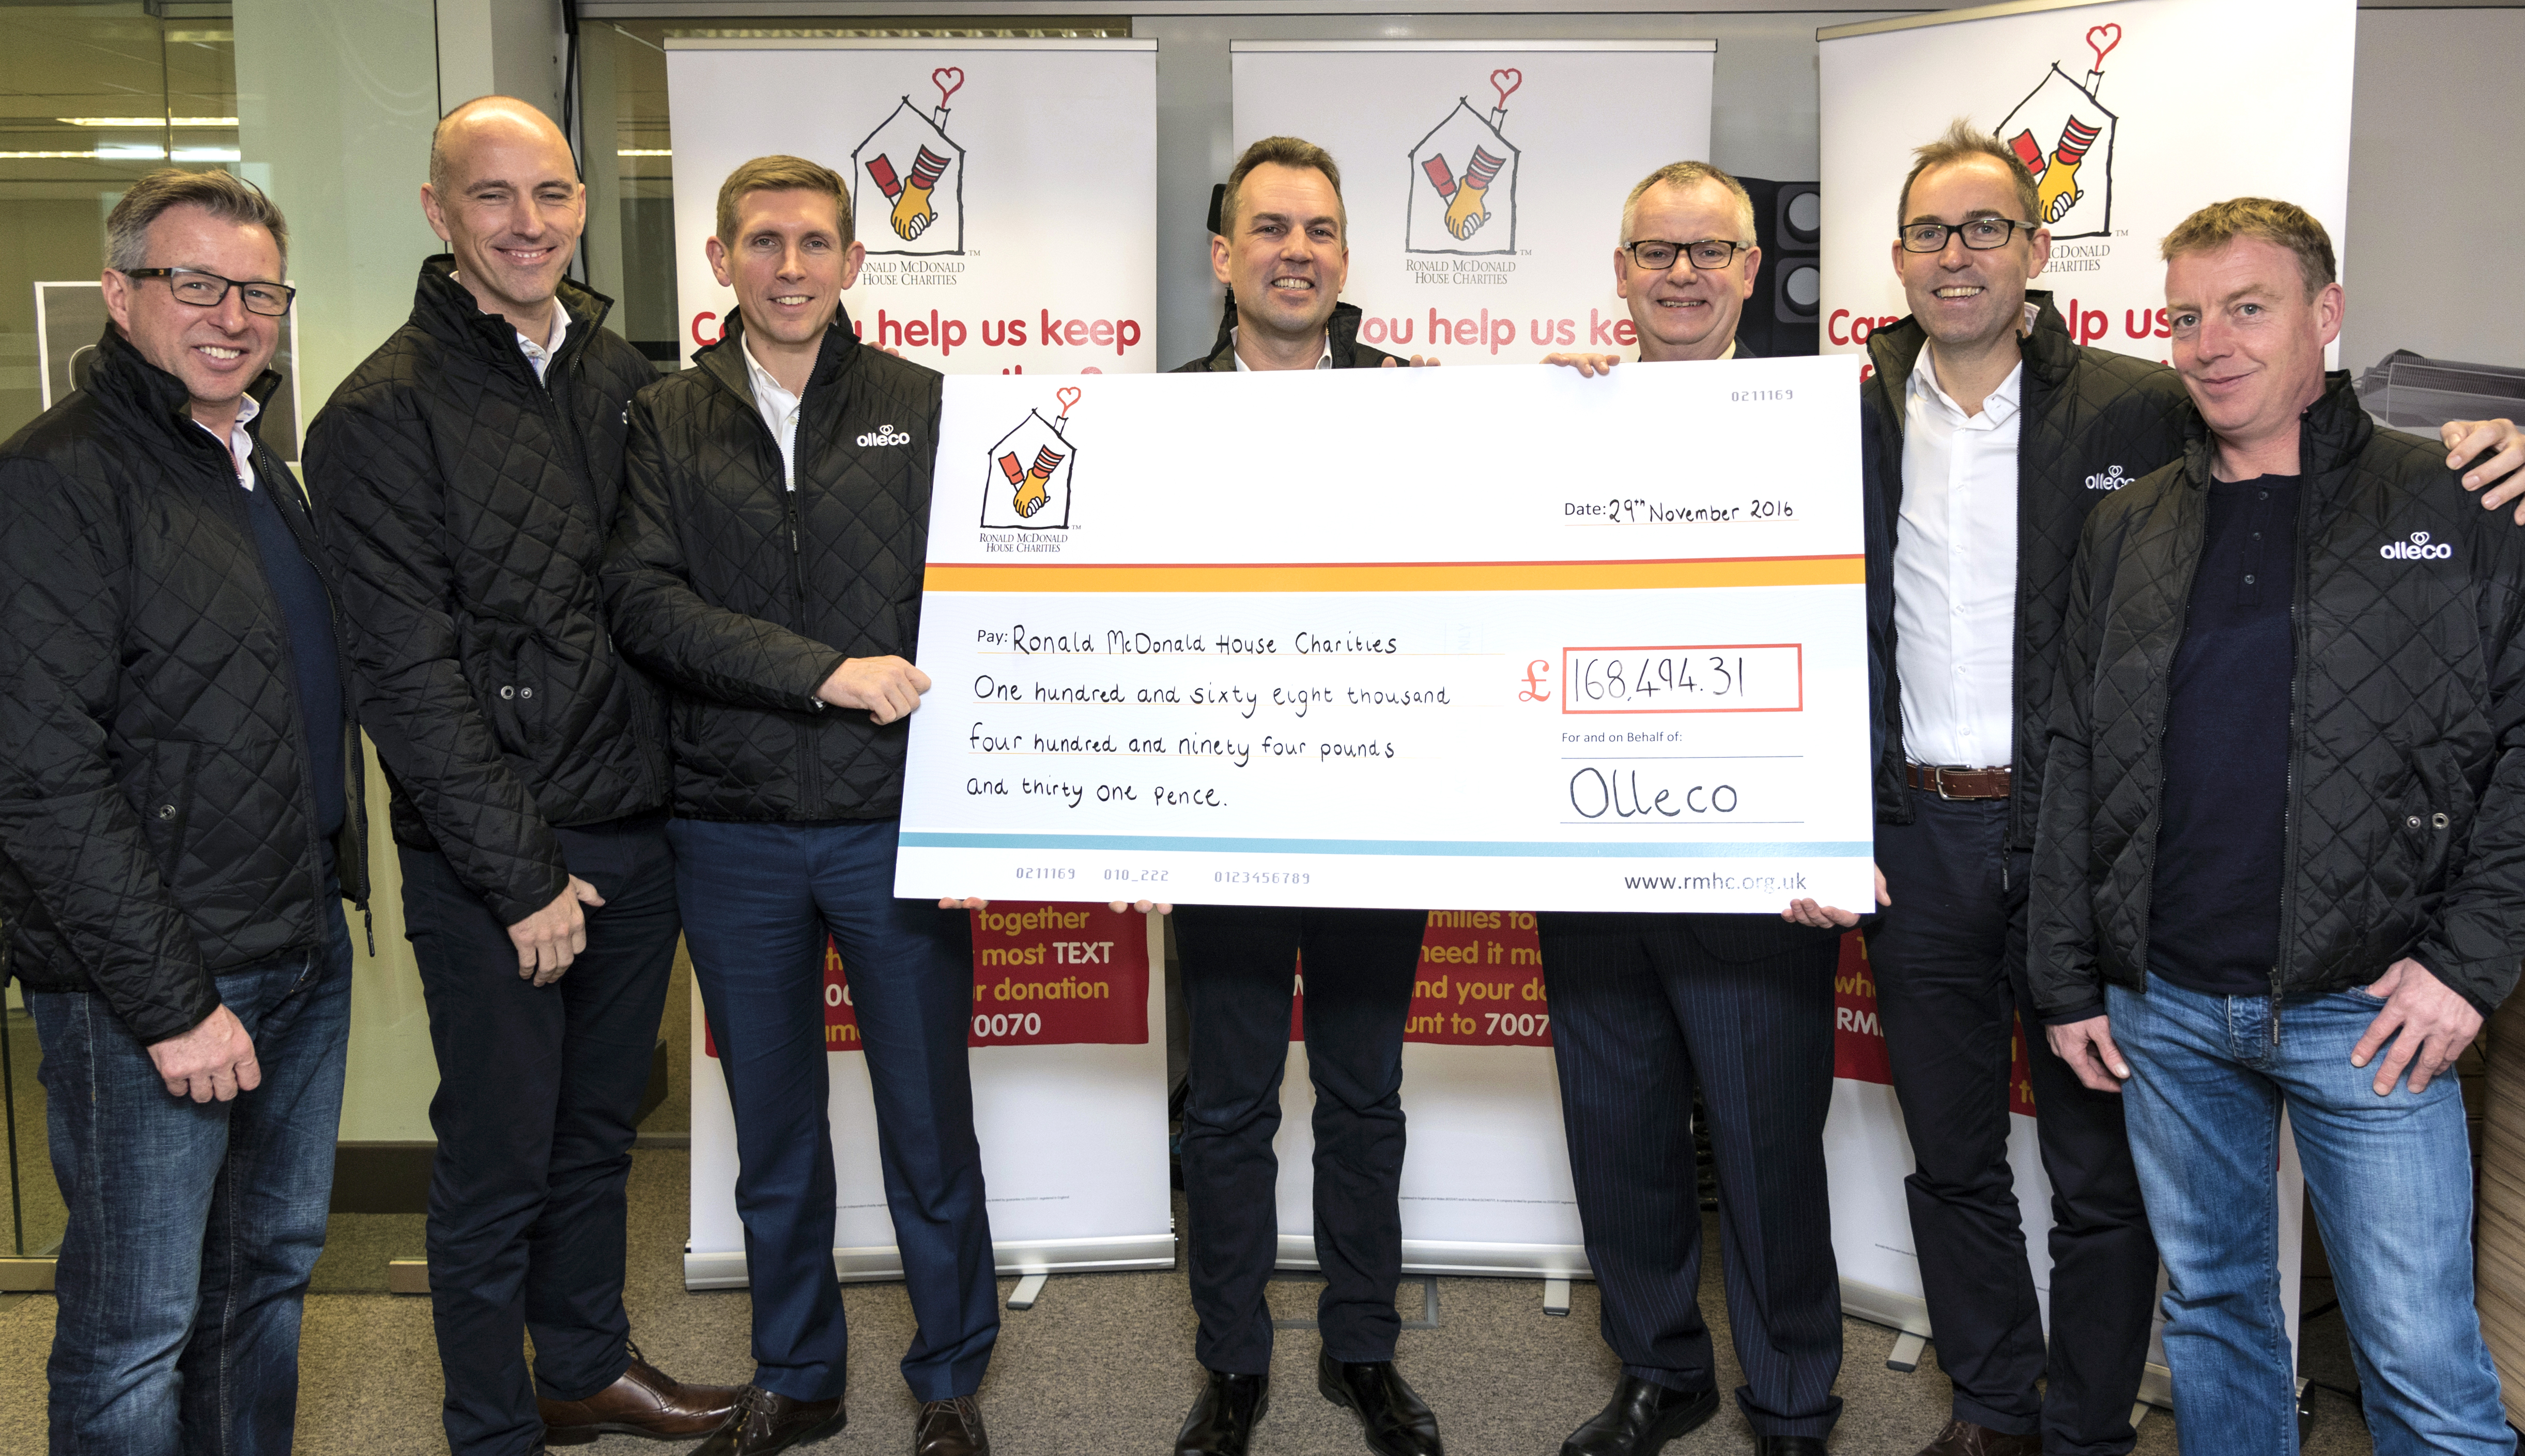 Olleco presenting cheque to RMHC